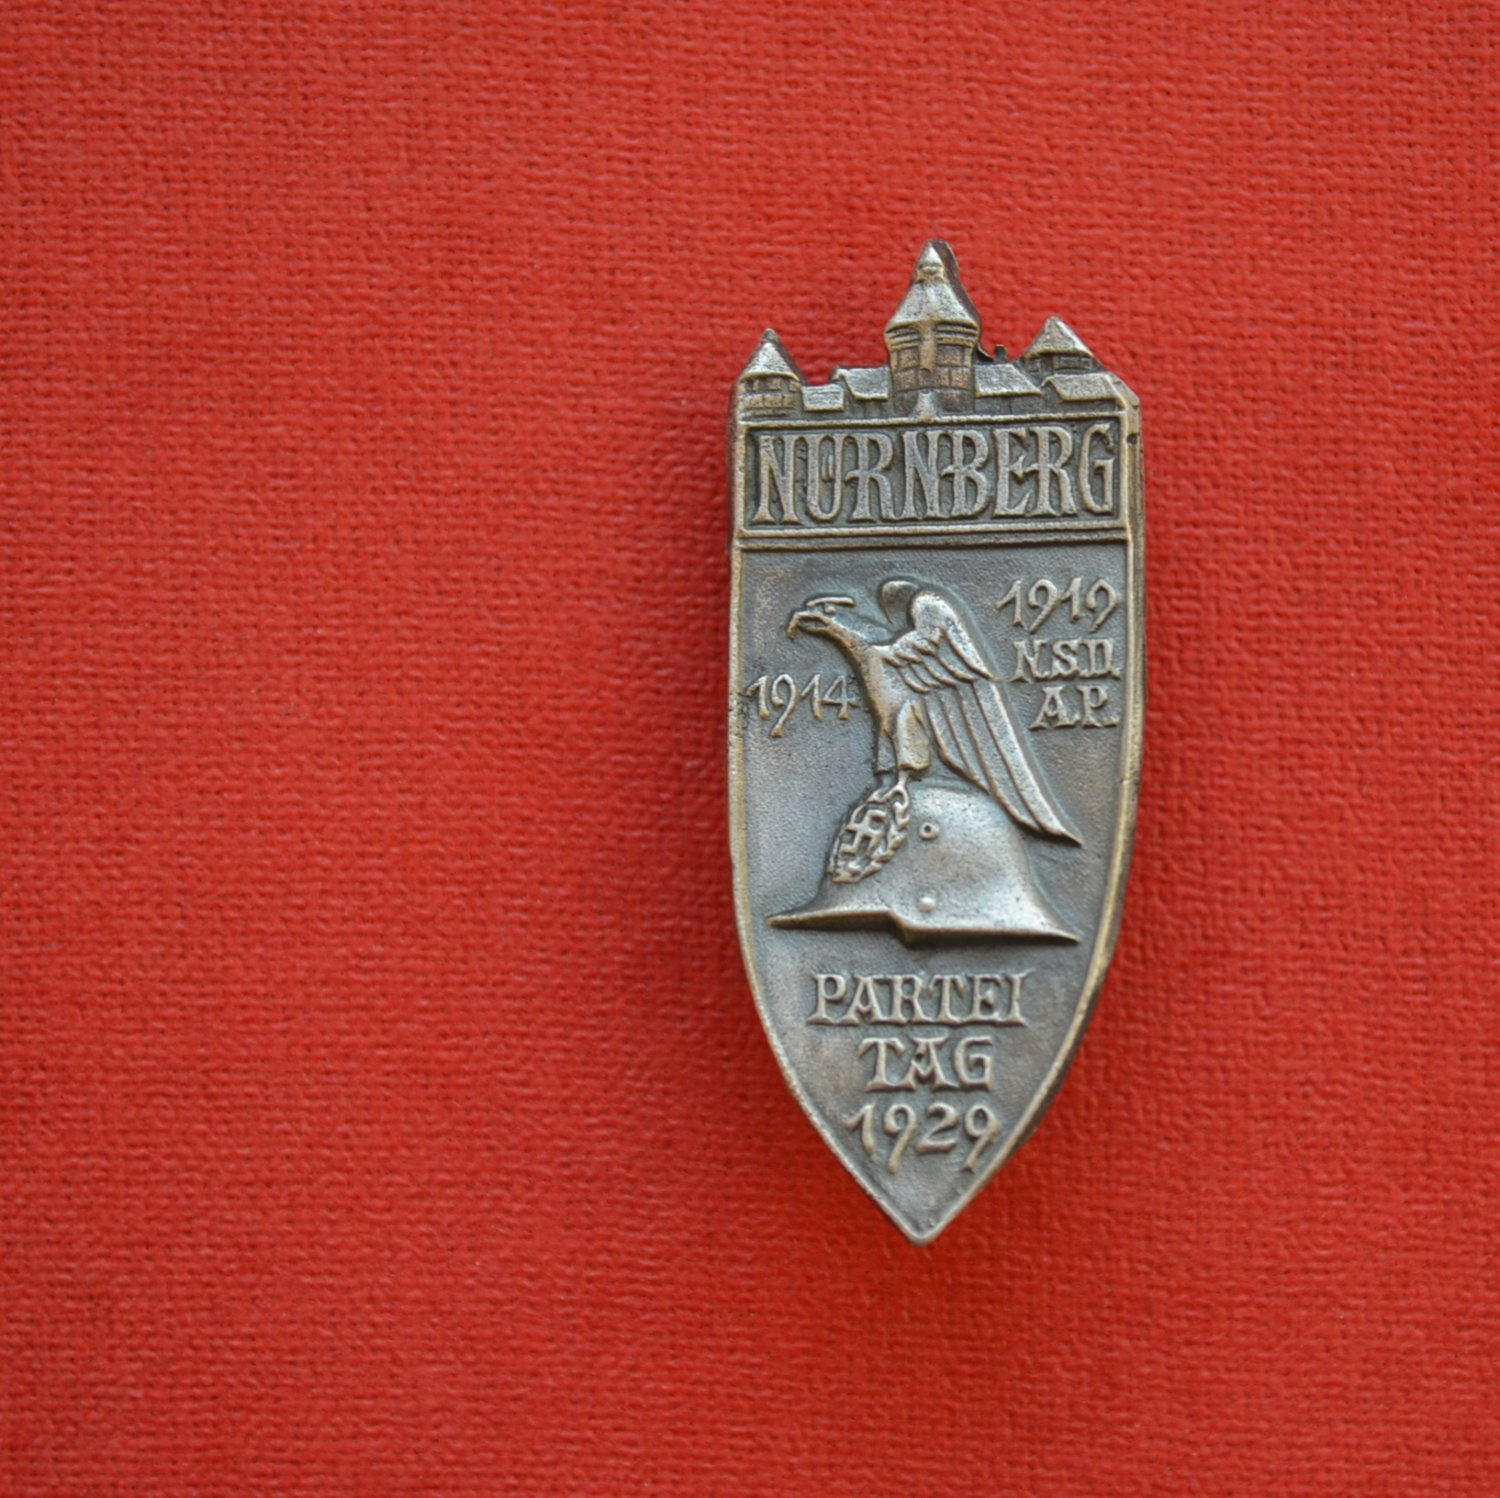 WWII THE GERMAN NUREMBERG PARTY DAY BADGE OF 1929